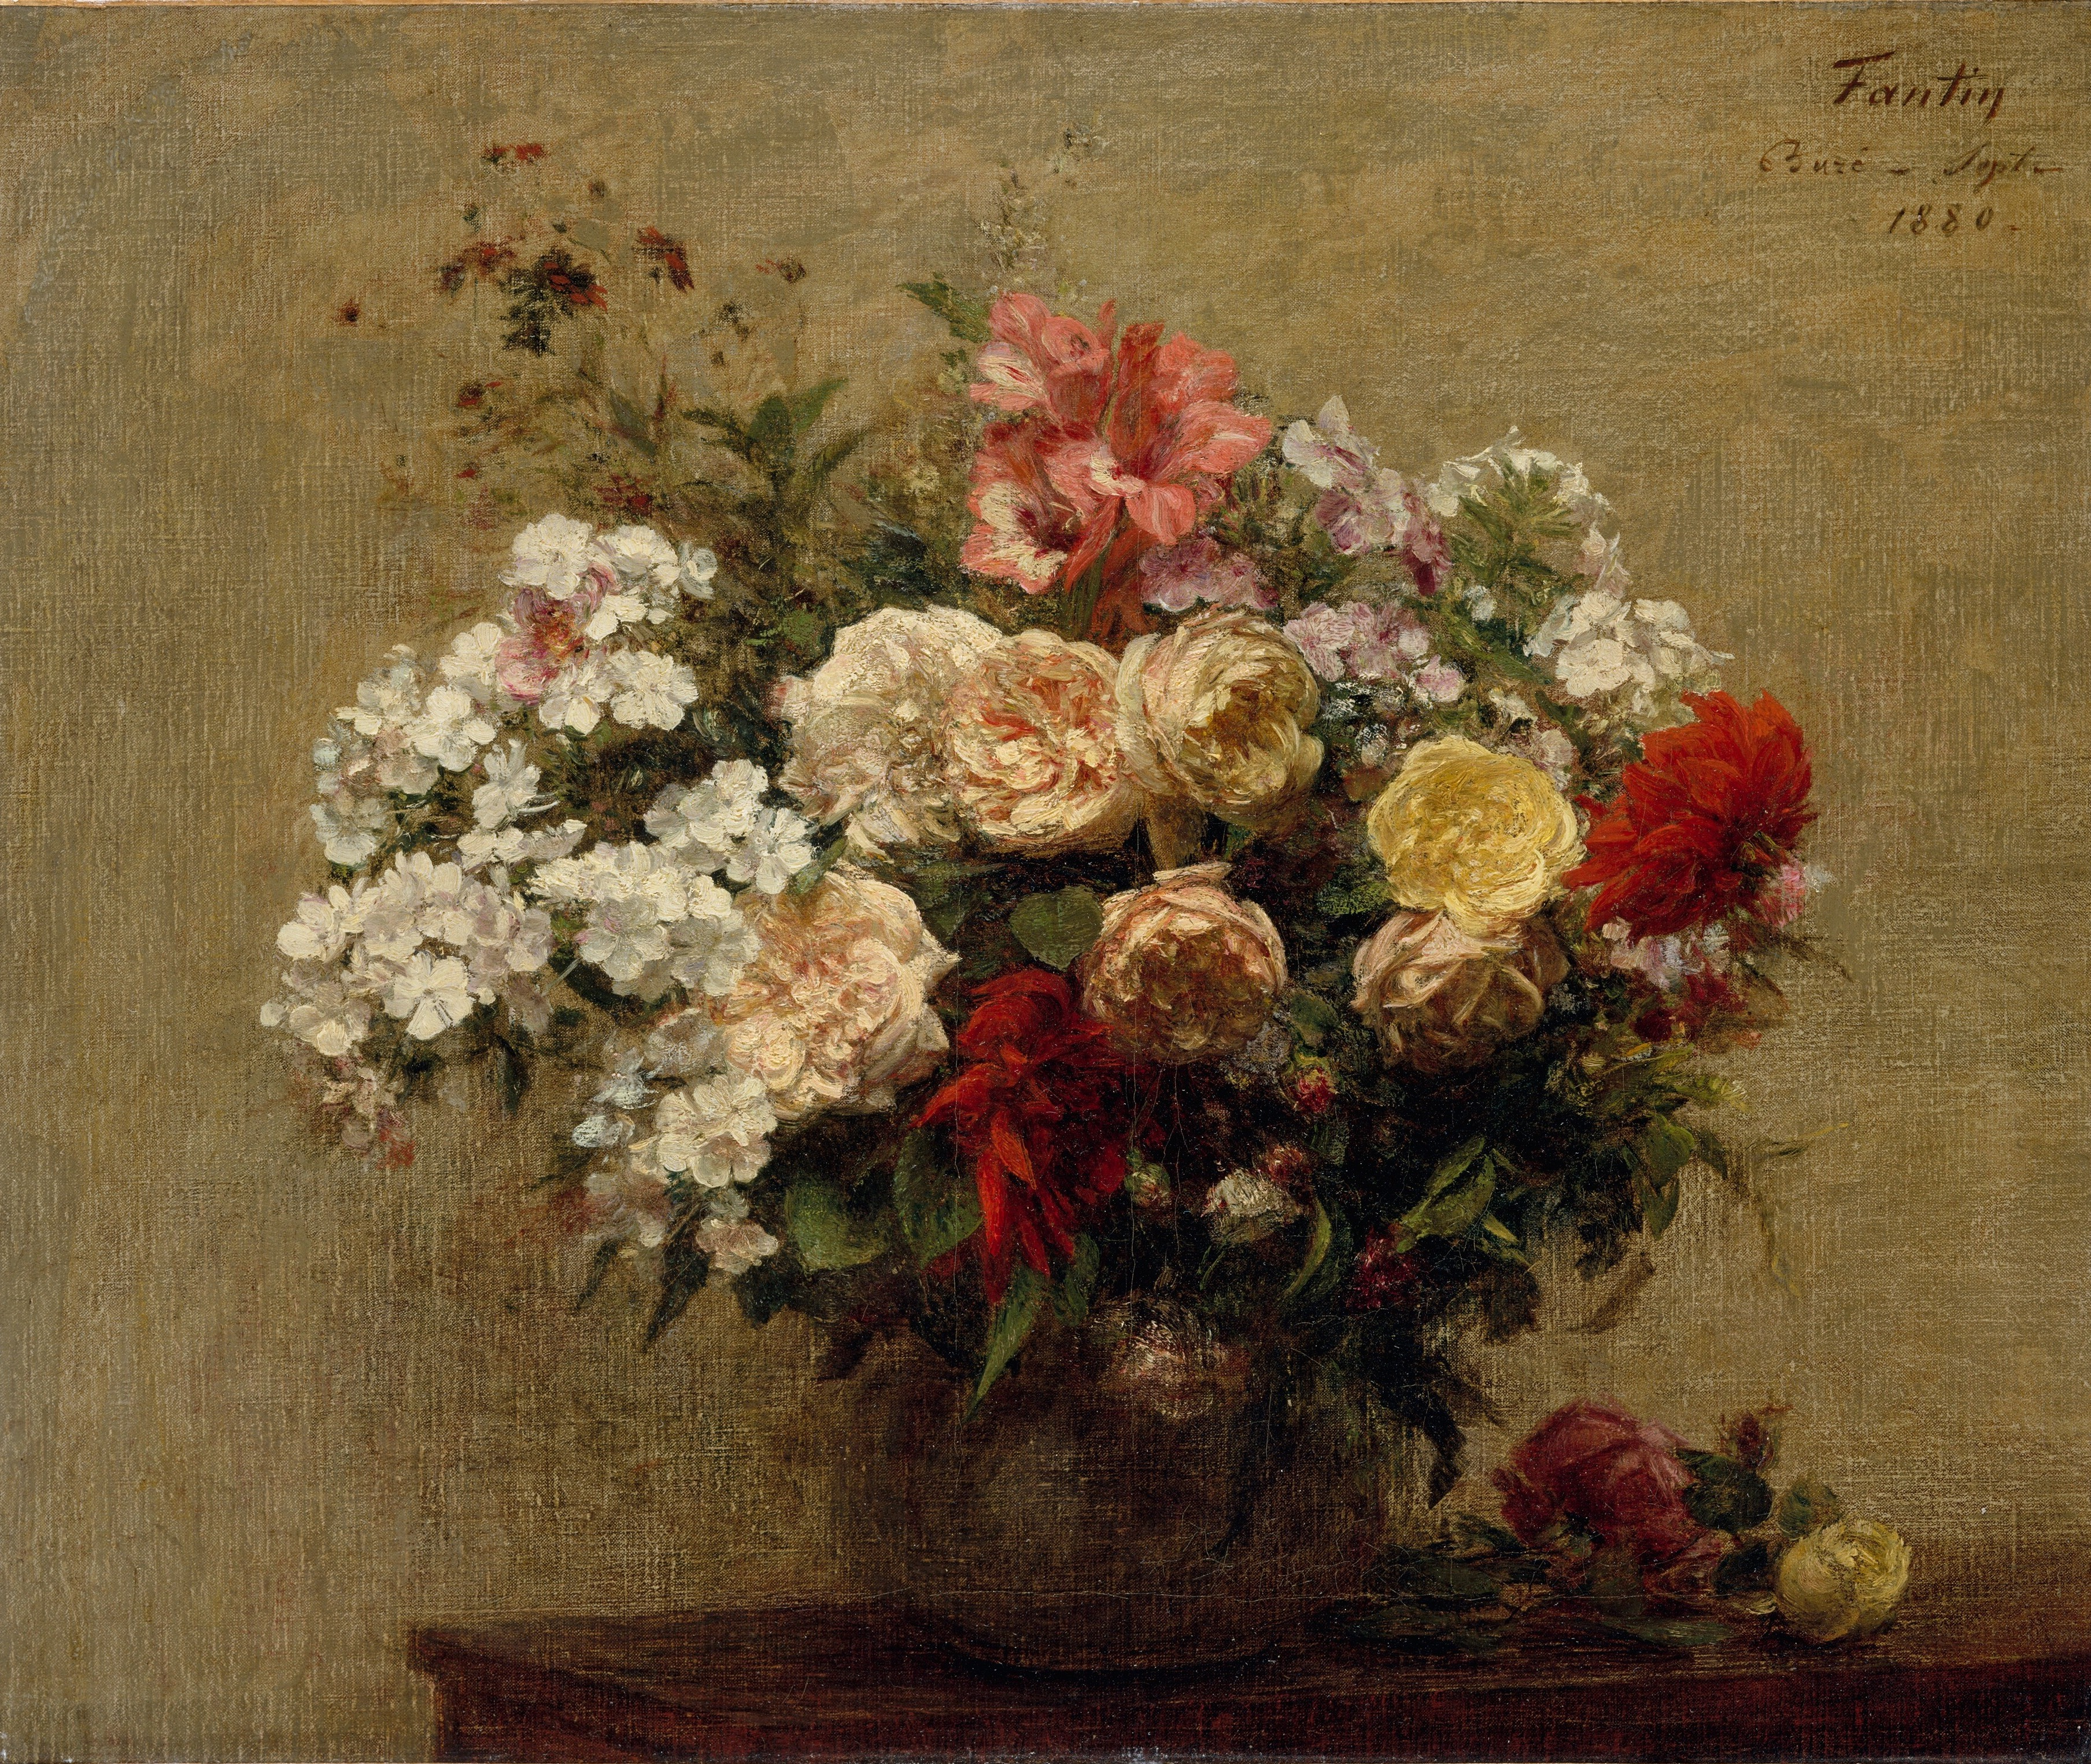 Summer Flowers by Henri Fantin-Latour, 1880, by The Met